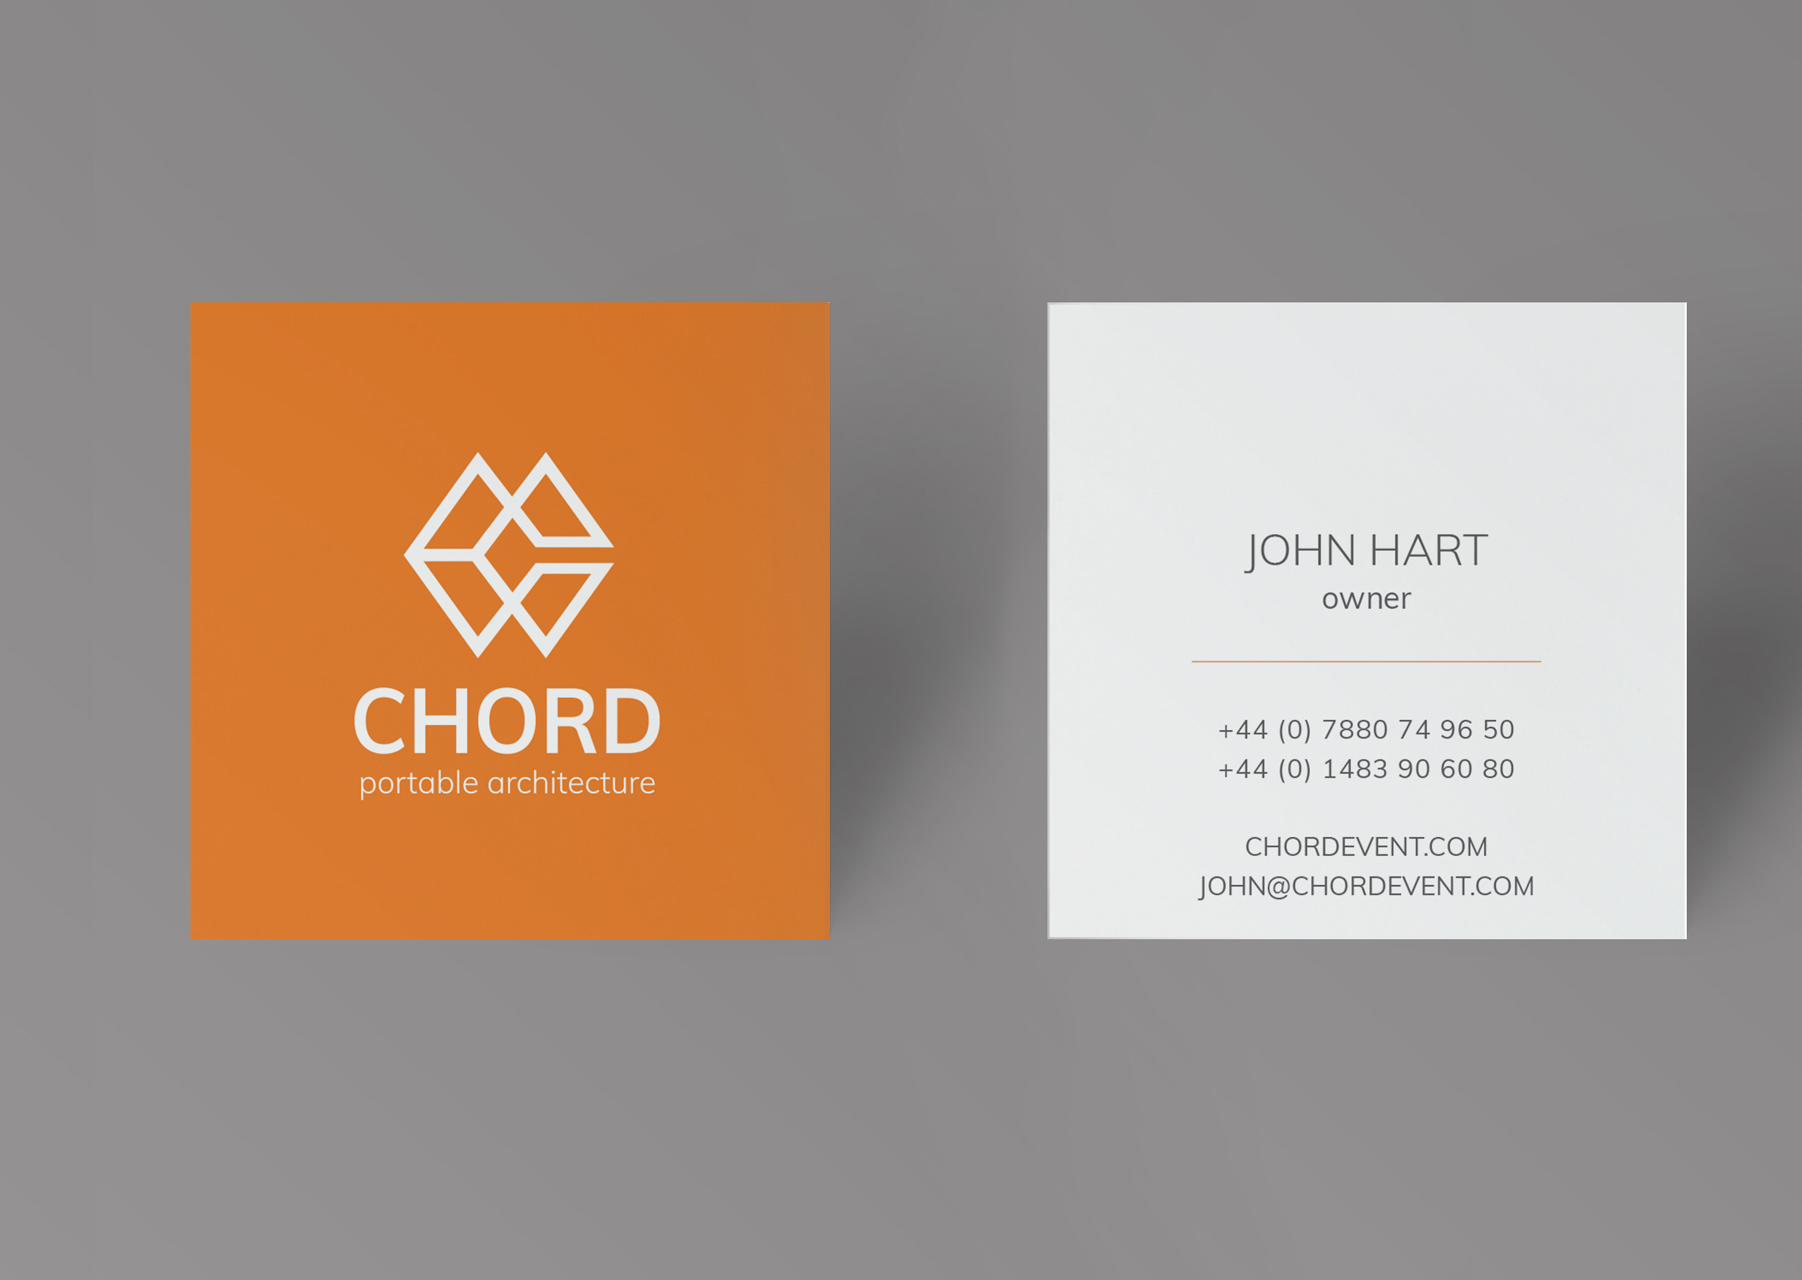 CHORD EVENT: New logo design and business card